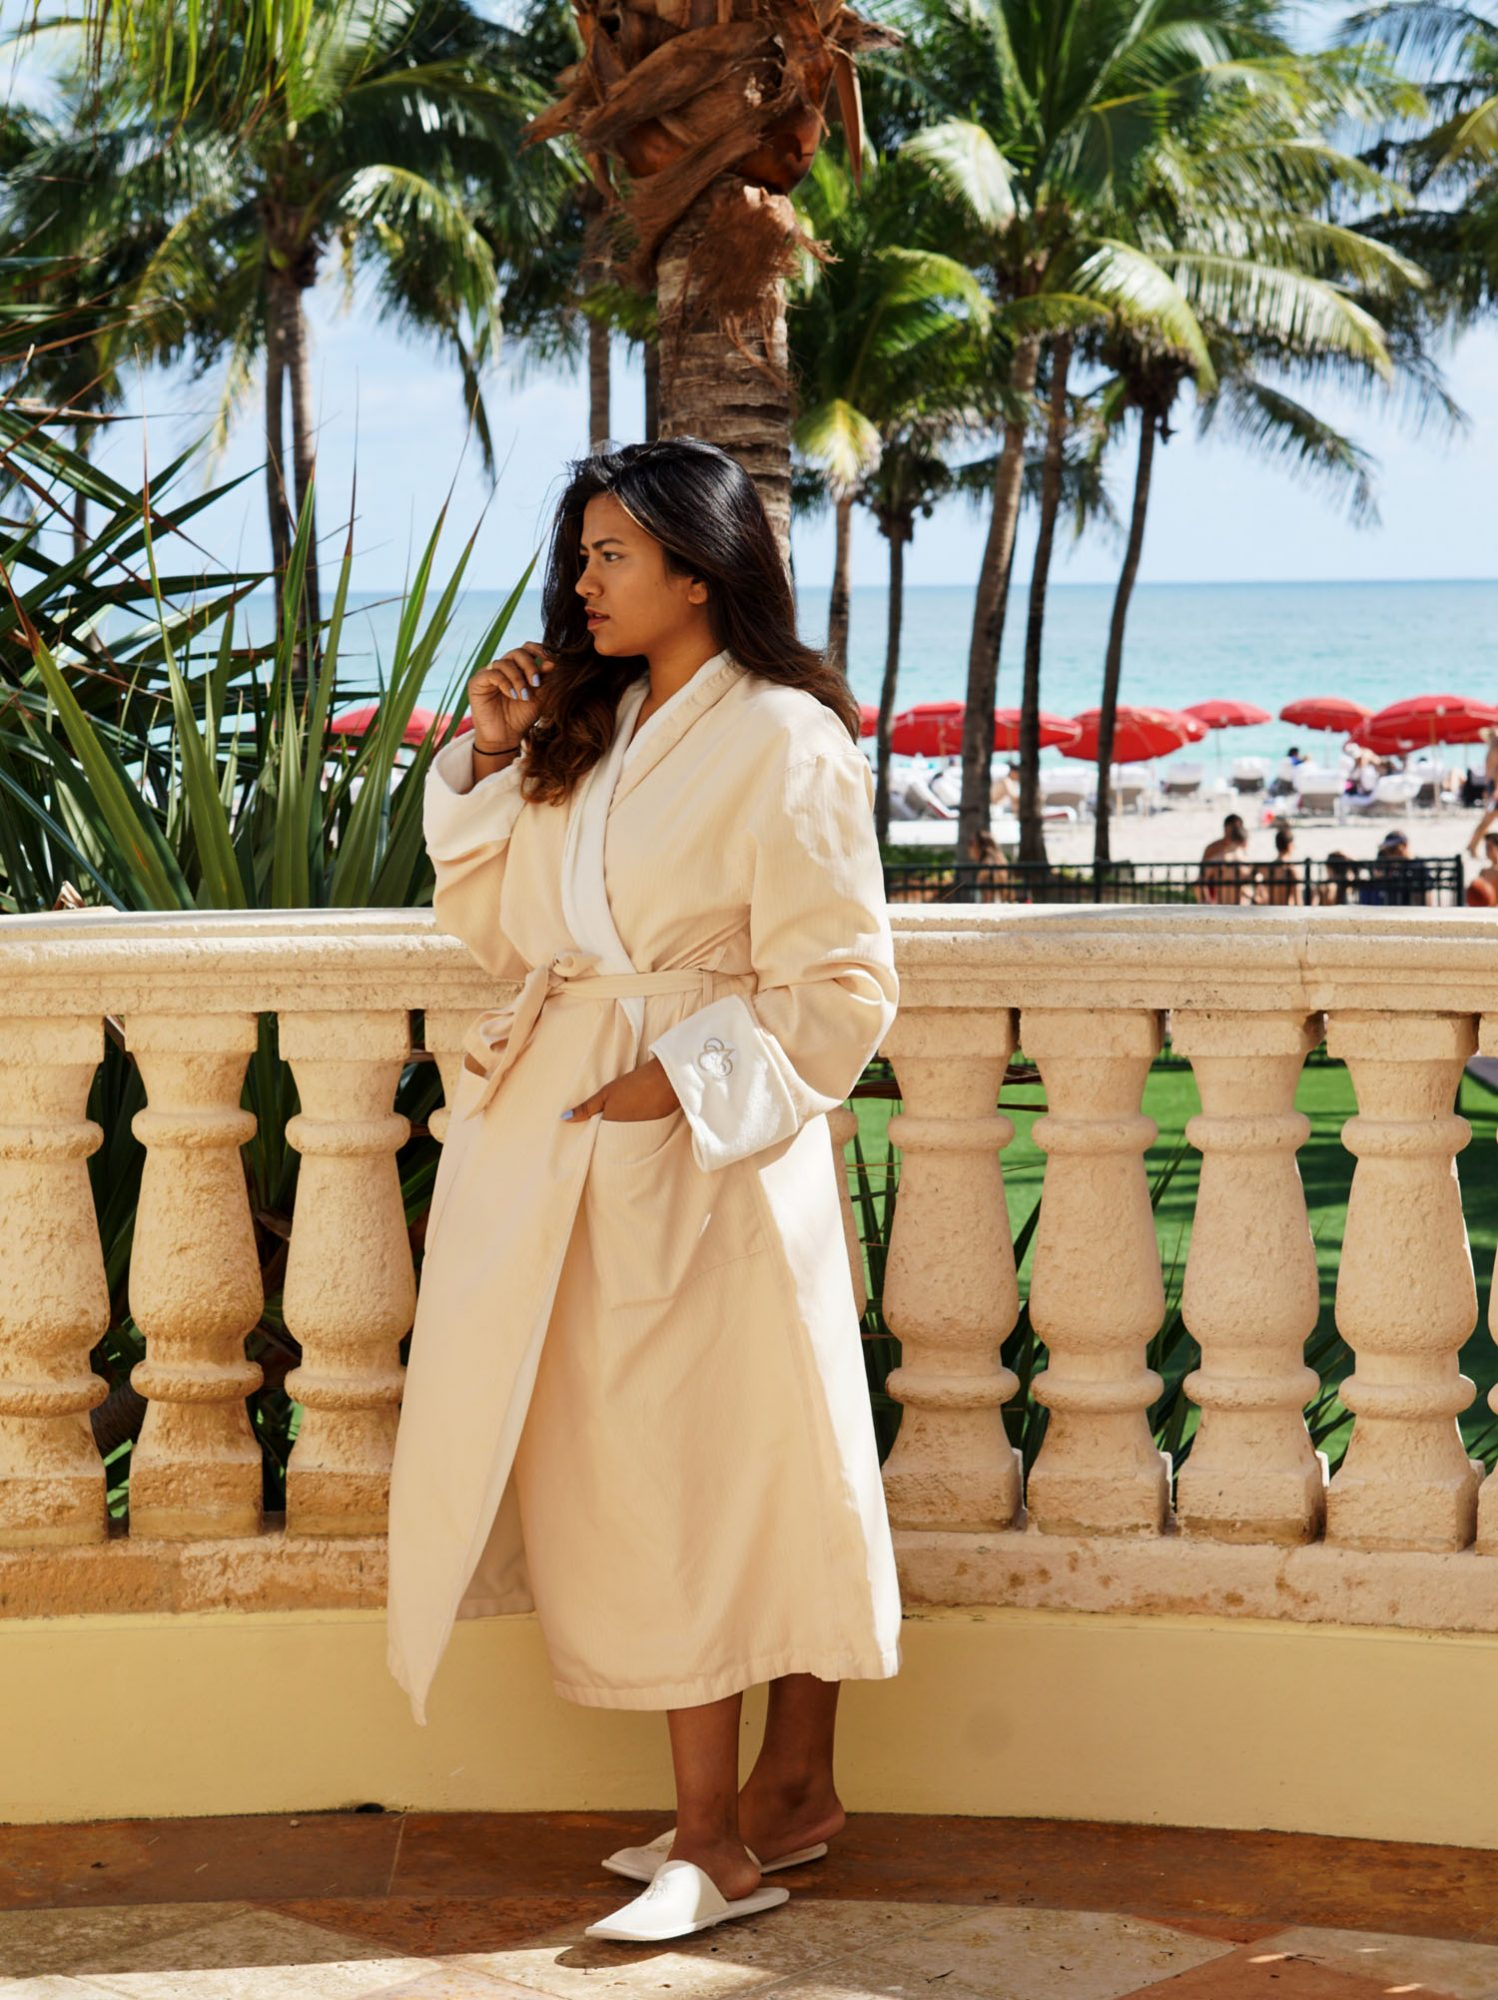 afroza-khan-miami-fashion-blogger-luxury-spa-review